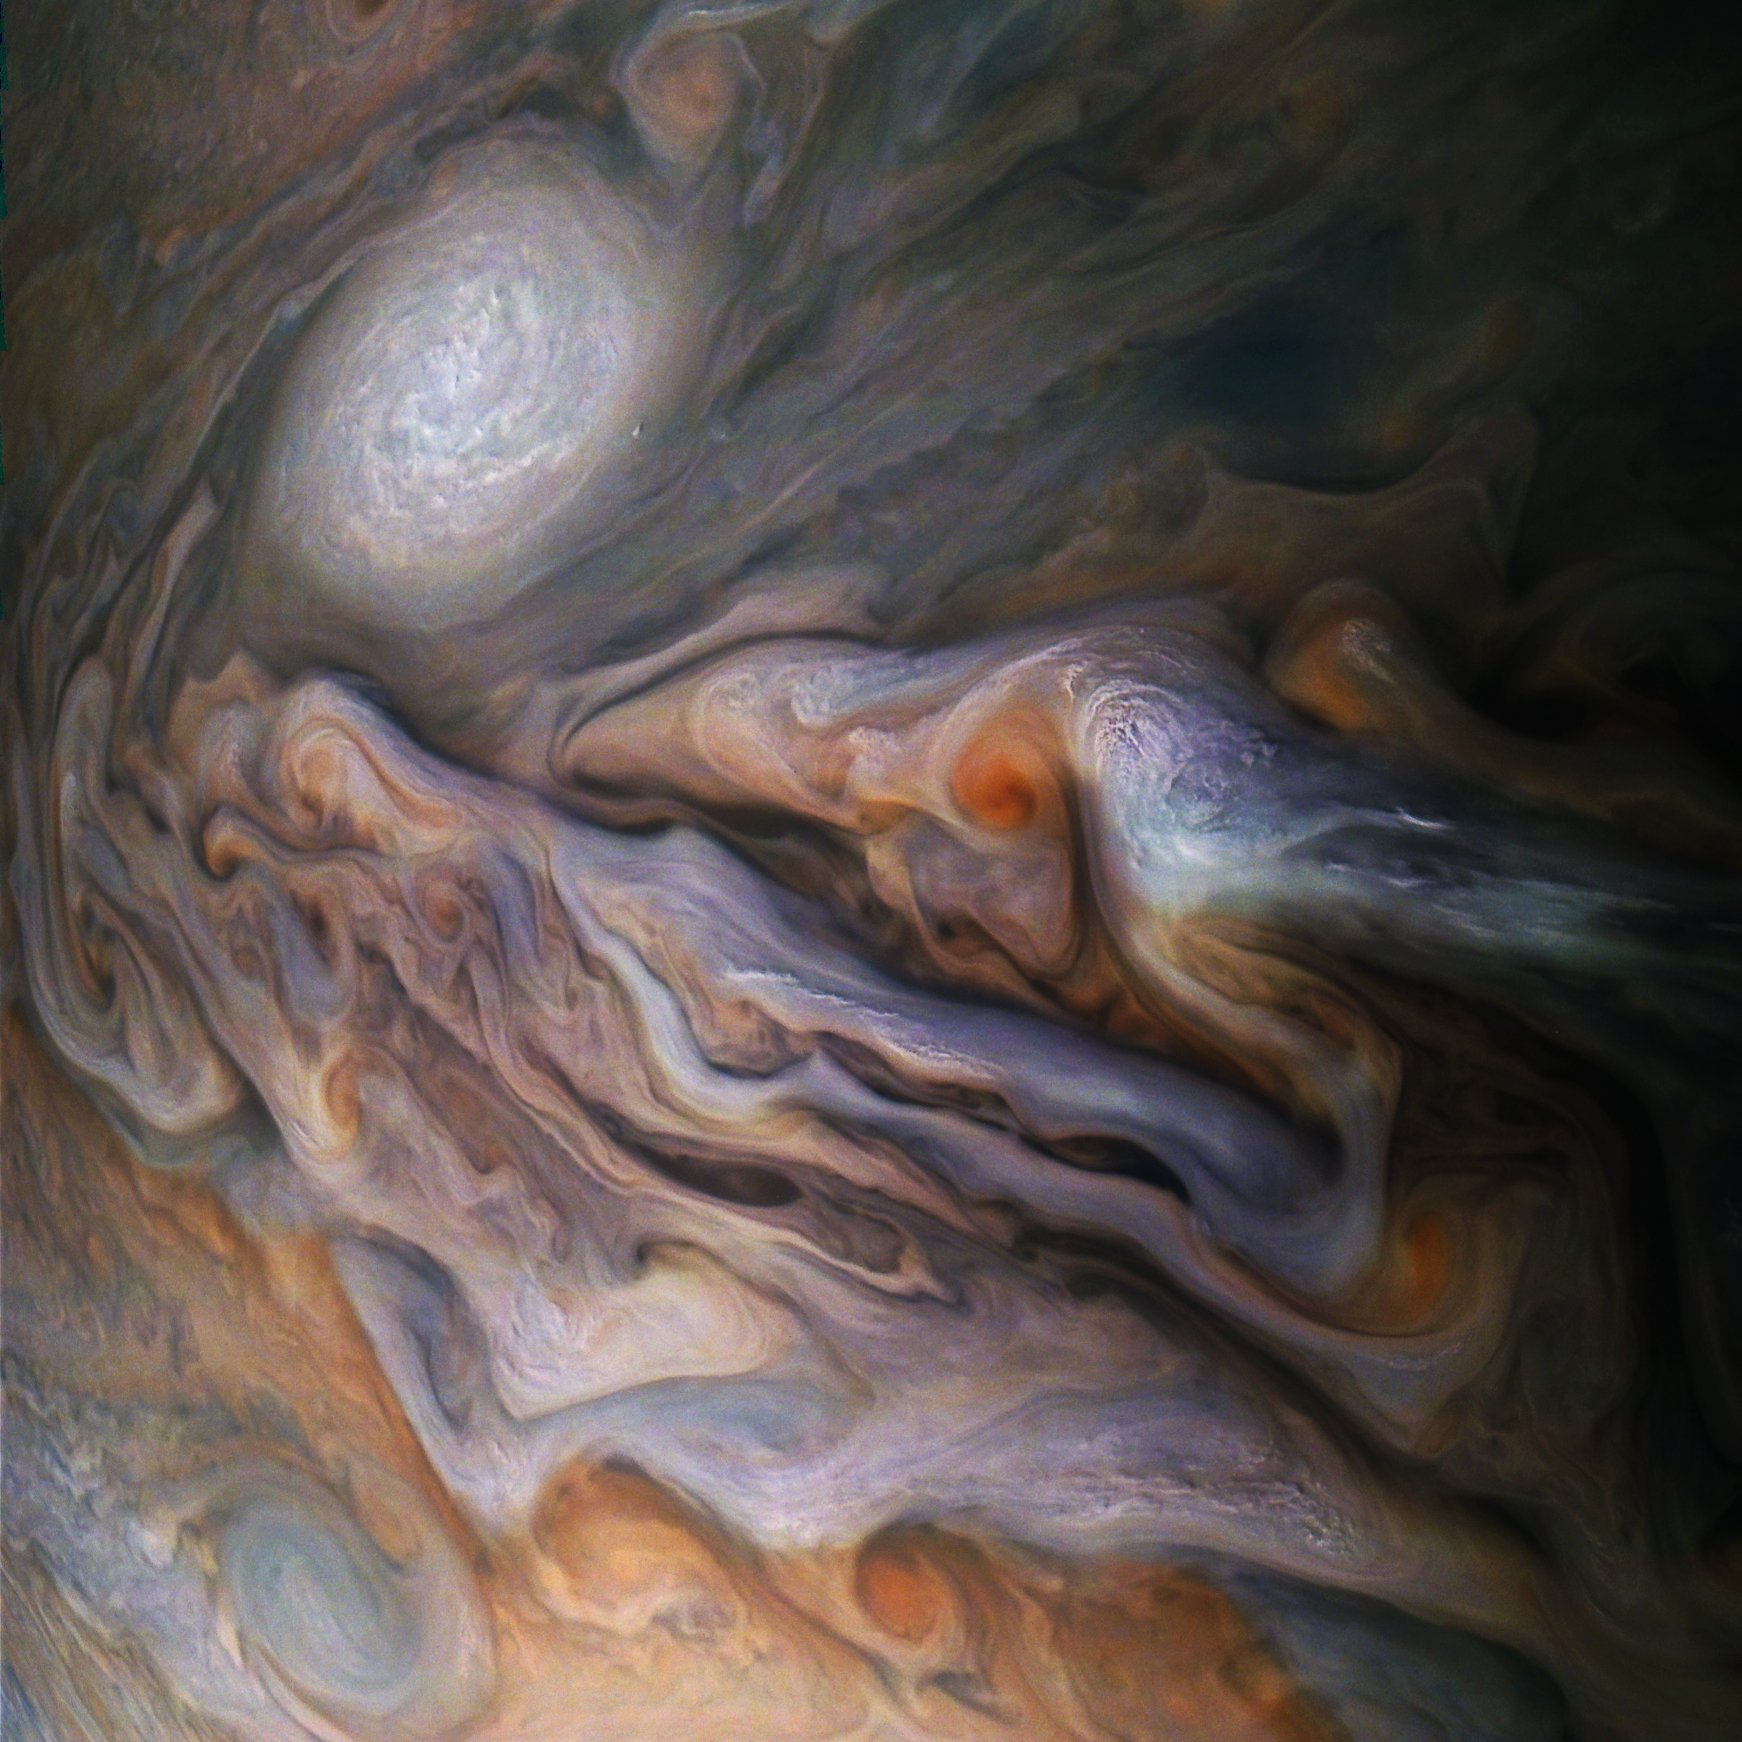 A multitude of magnificent, swirling clouds in Jupiter's dynamic North North Temperate Belt is captured in this image from NASA's Juno spacecraft. Appearing in the scene are several bright-white ???pop-up??? clouds as well as an anticyclonic storm, known as a white oval. This color-enhanced image was taken at 1:58 p.m. PDT on Oct. 29, 2018 (4:58 p.m. EDT) as the spacecraft performed its 16th close flyby of Jupiter. At the time, Juno was about 4,400 miles (7,000 kilometers) from the planet's cloud tops, at a latitude of approximately 40 degrees north. Citizen scientists Gerald Eichst??dt and Se??n Doran created this image using data from the spacecraft's JunoCam imager. JunoCam's raw images are available for the public to peruse and to process into image products at: http://missionjuno.swri.edu/junocam. More information about Juno is at: http://www.nasa.gov/juno and http://missionjuno.swri.edu. Image Credits: NASA/JPL-Caltech/SwRI/MSSS/Gerald Eichst??dt/Se??n Doran